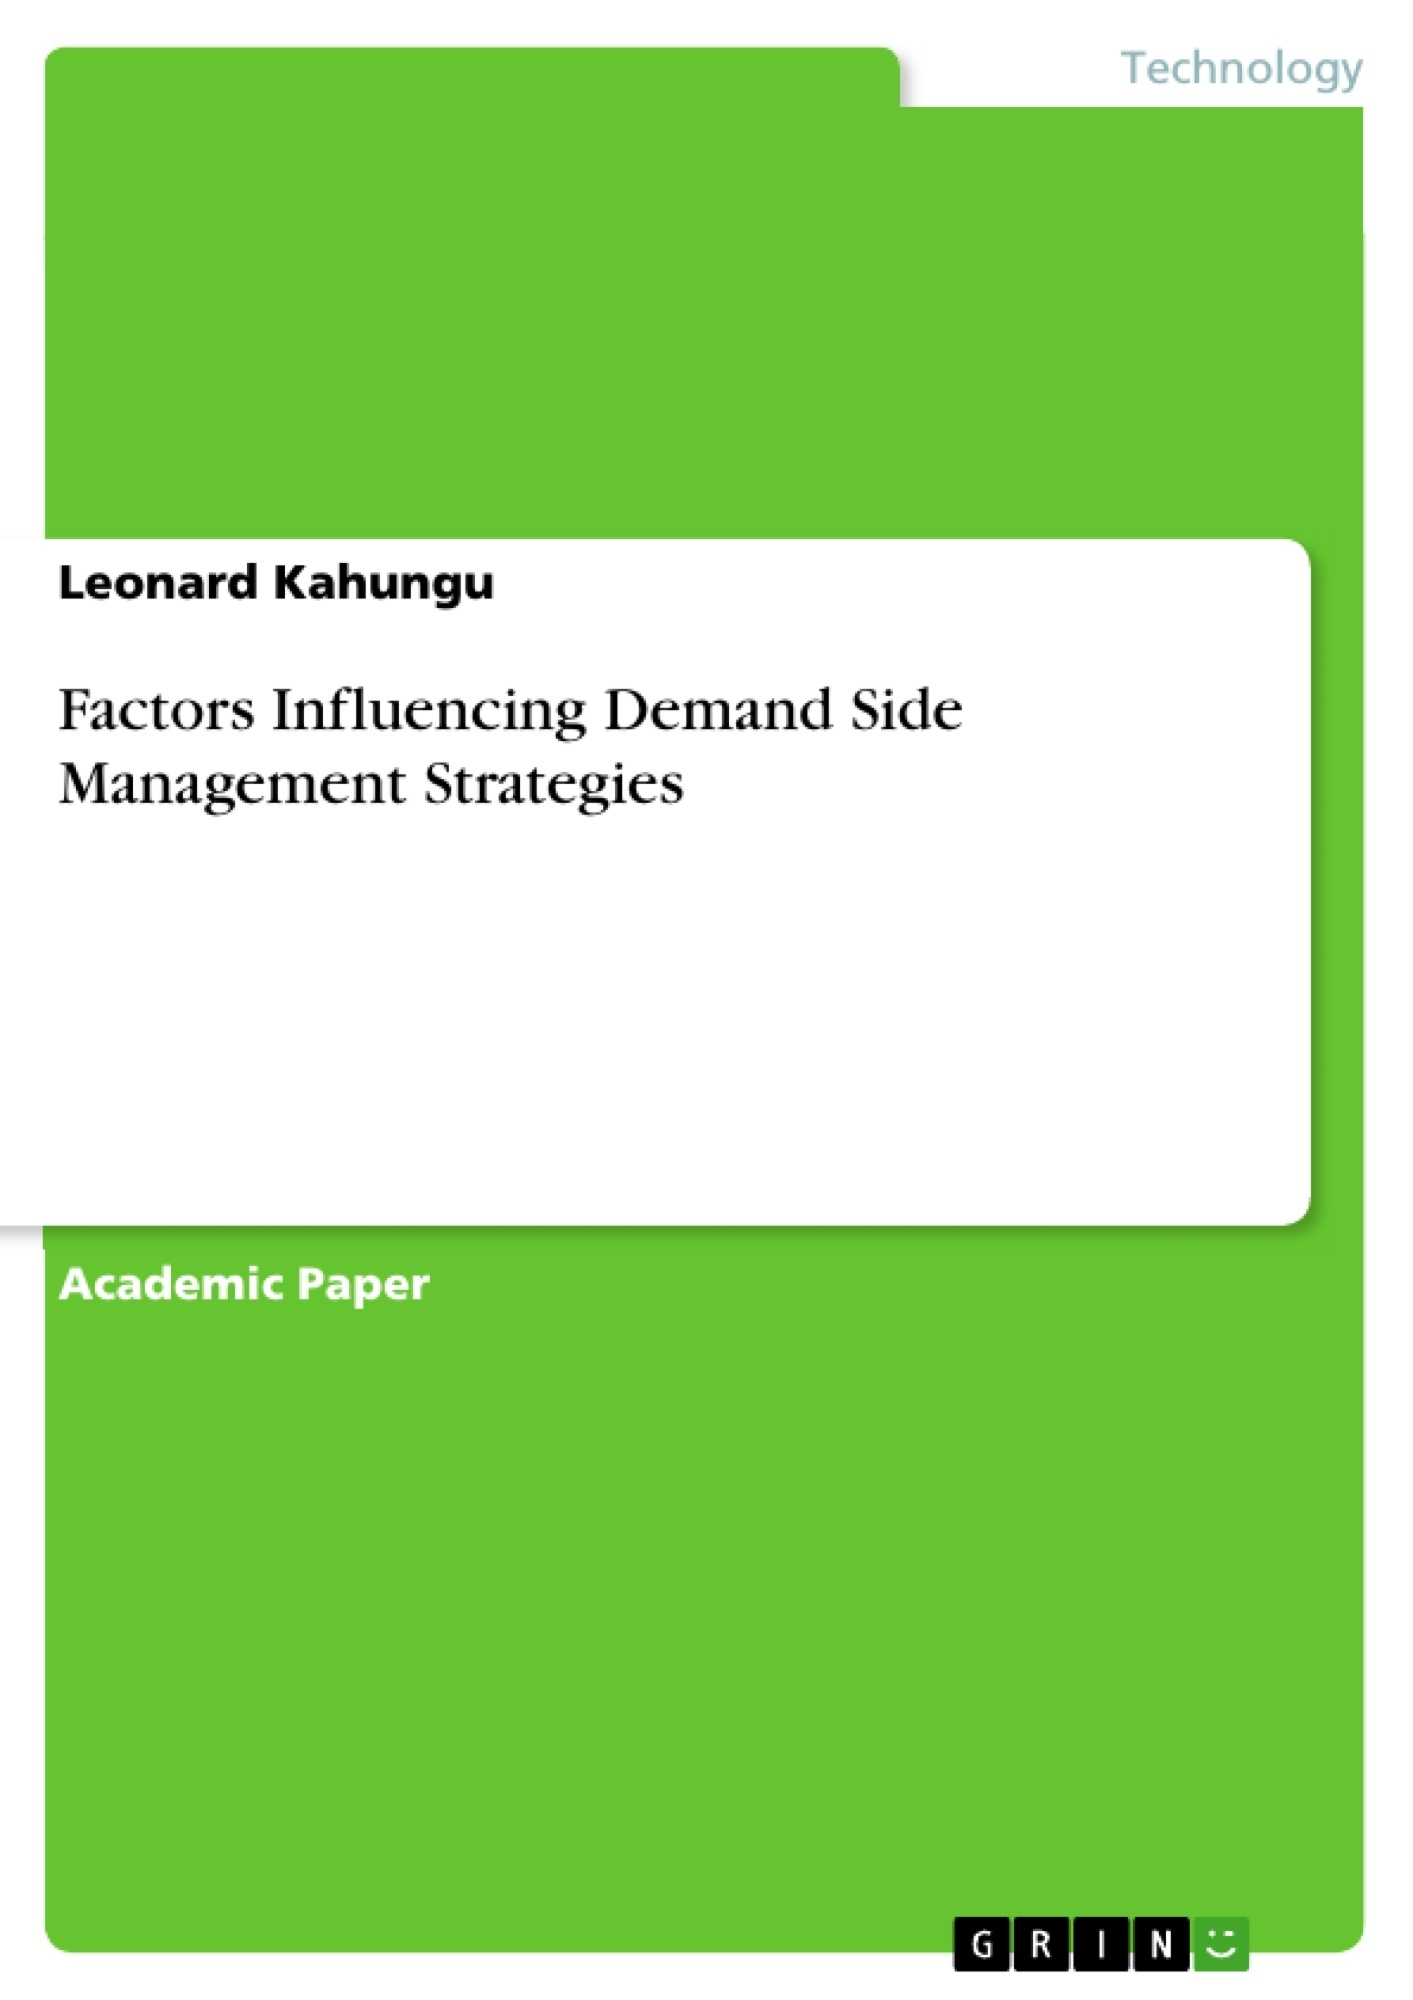 Title: Factors Influencing Demand Side Management Strategies